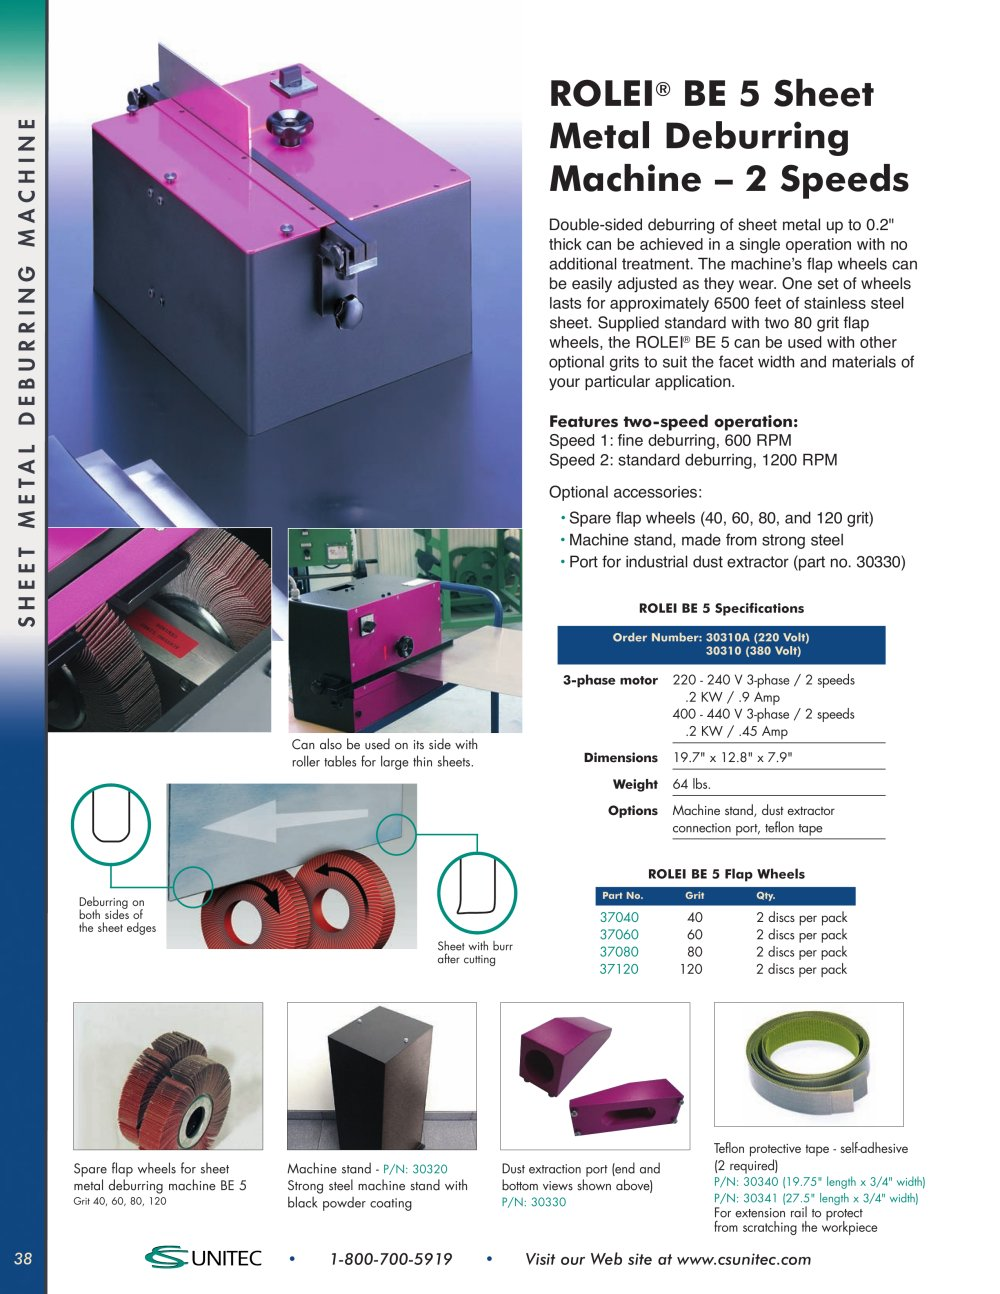 Sheet Metal Deburring Beveling Faceting Machines Cs Unitec Two Speeds Directions Multispeed 3phase Motor Power 1 6 Pages